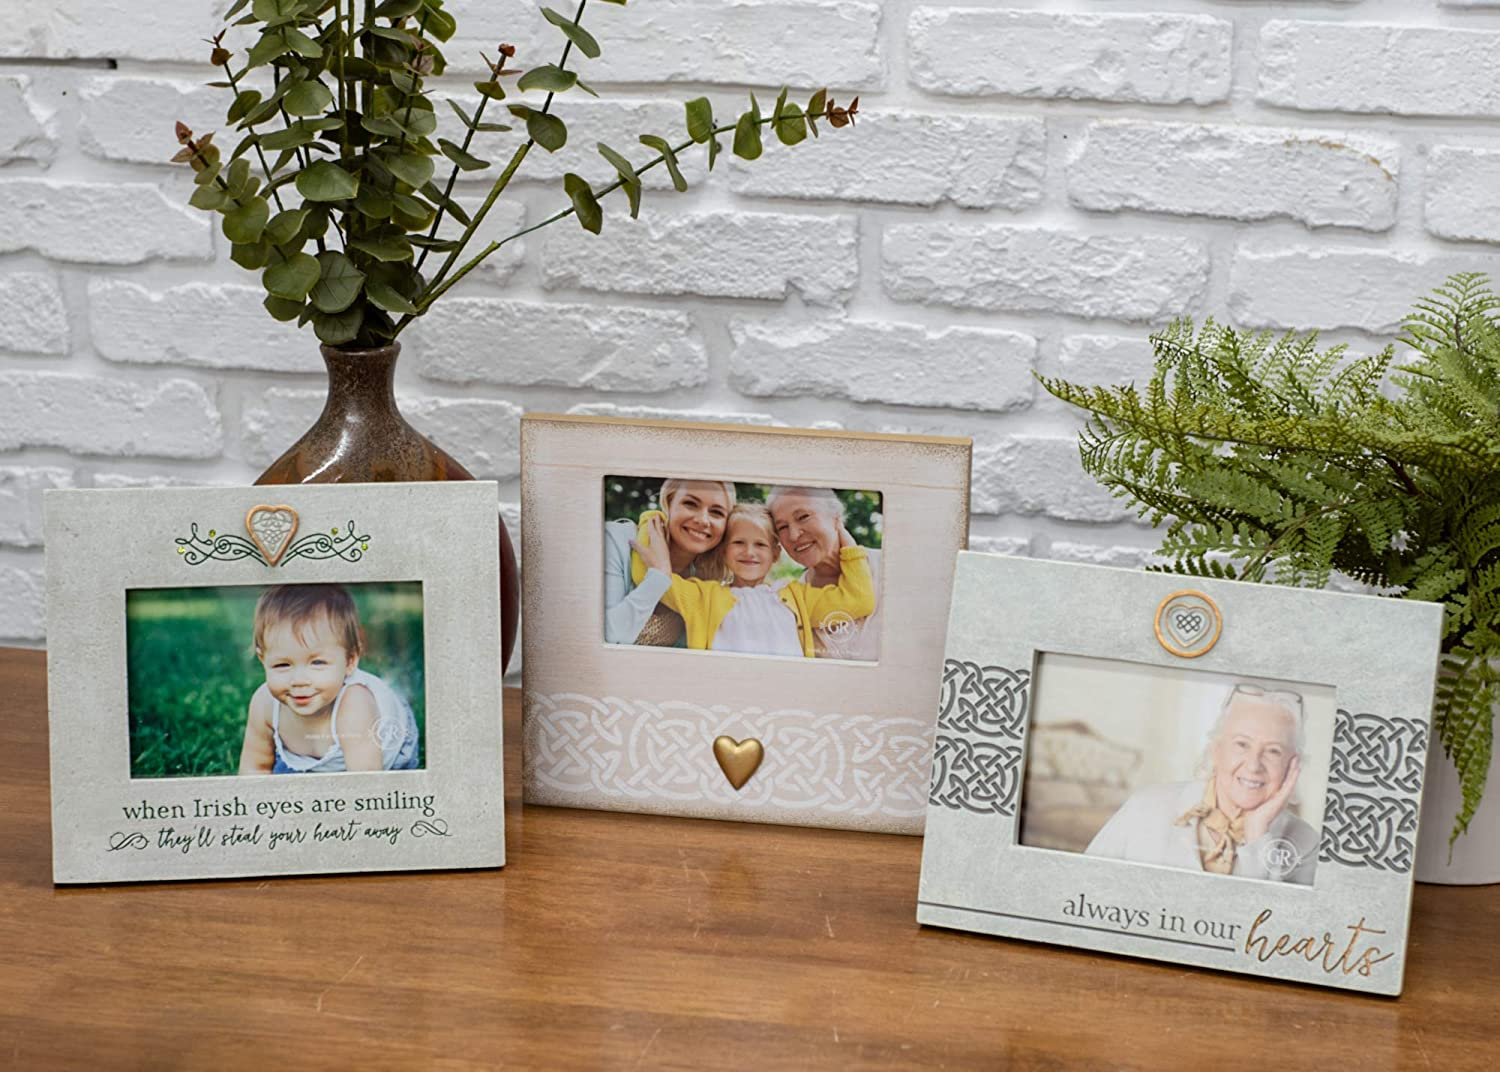 Memorial Picture Frame  4x4 photo Grasslands Road Always in My Heart Frame